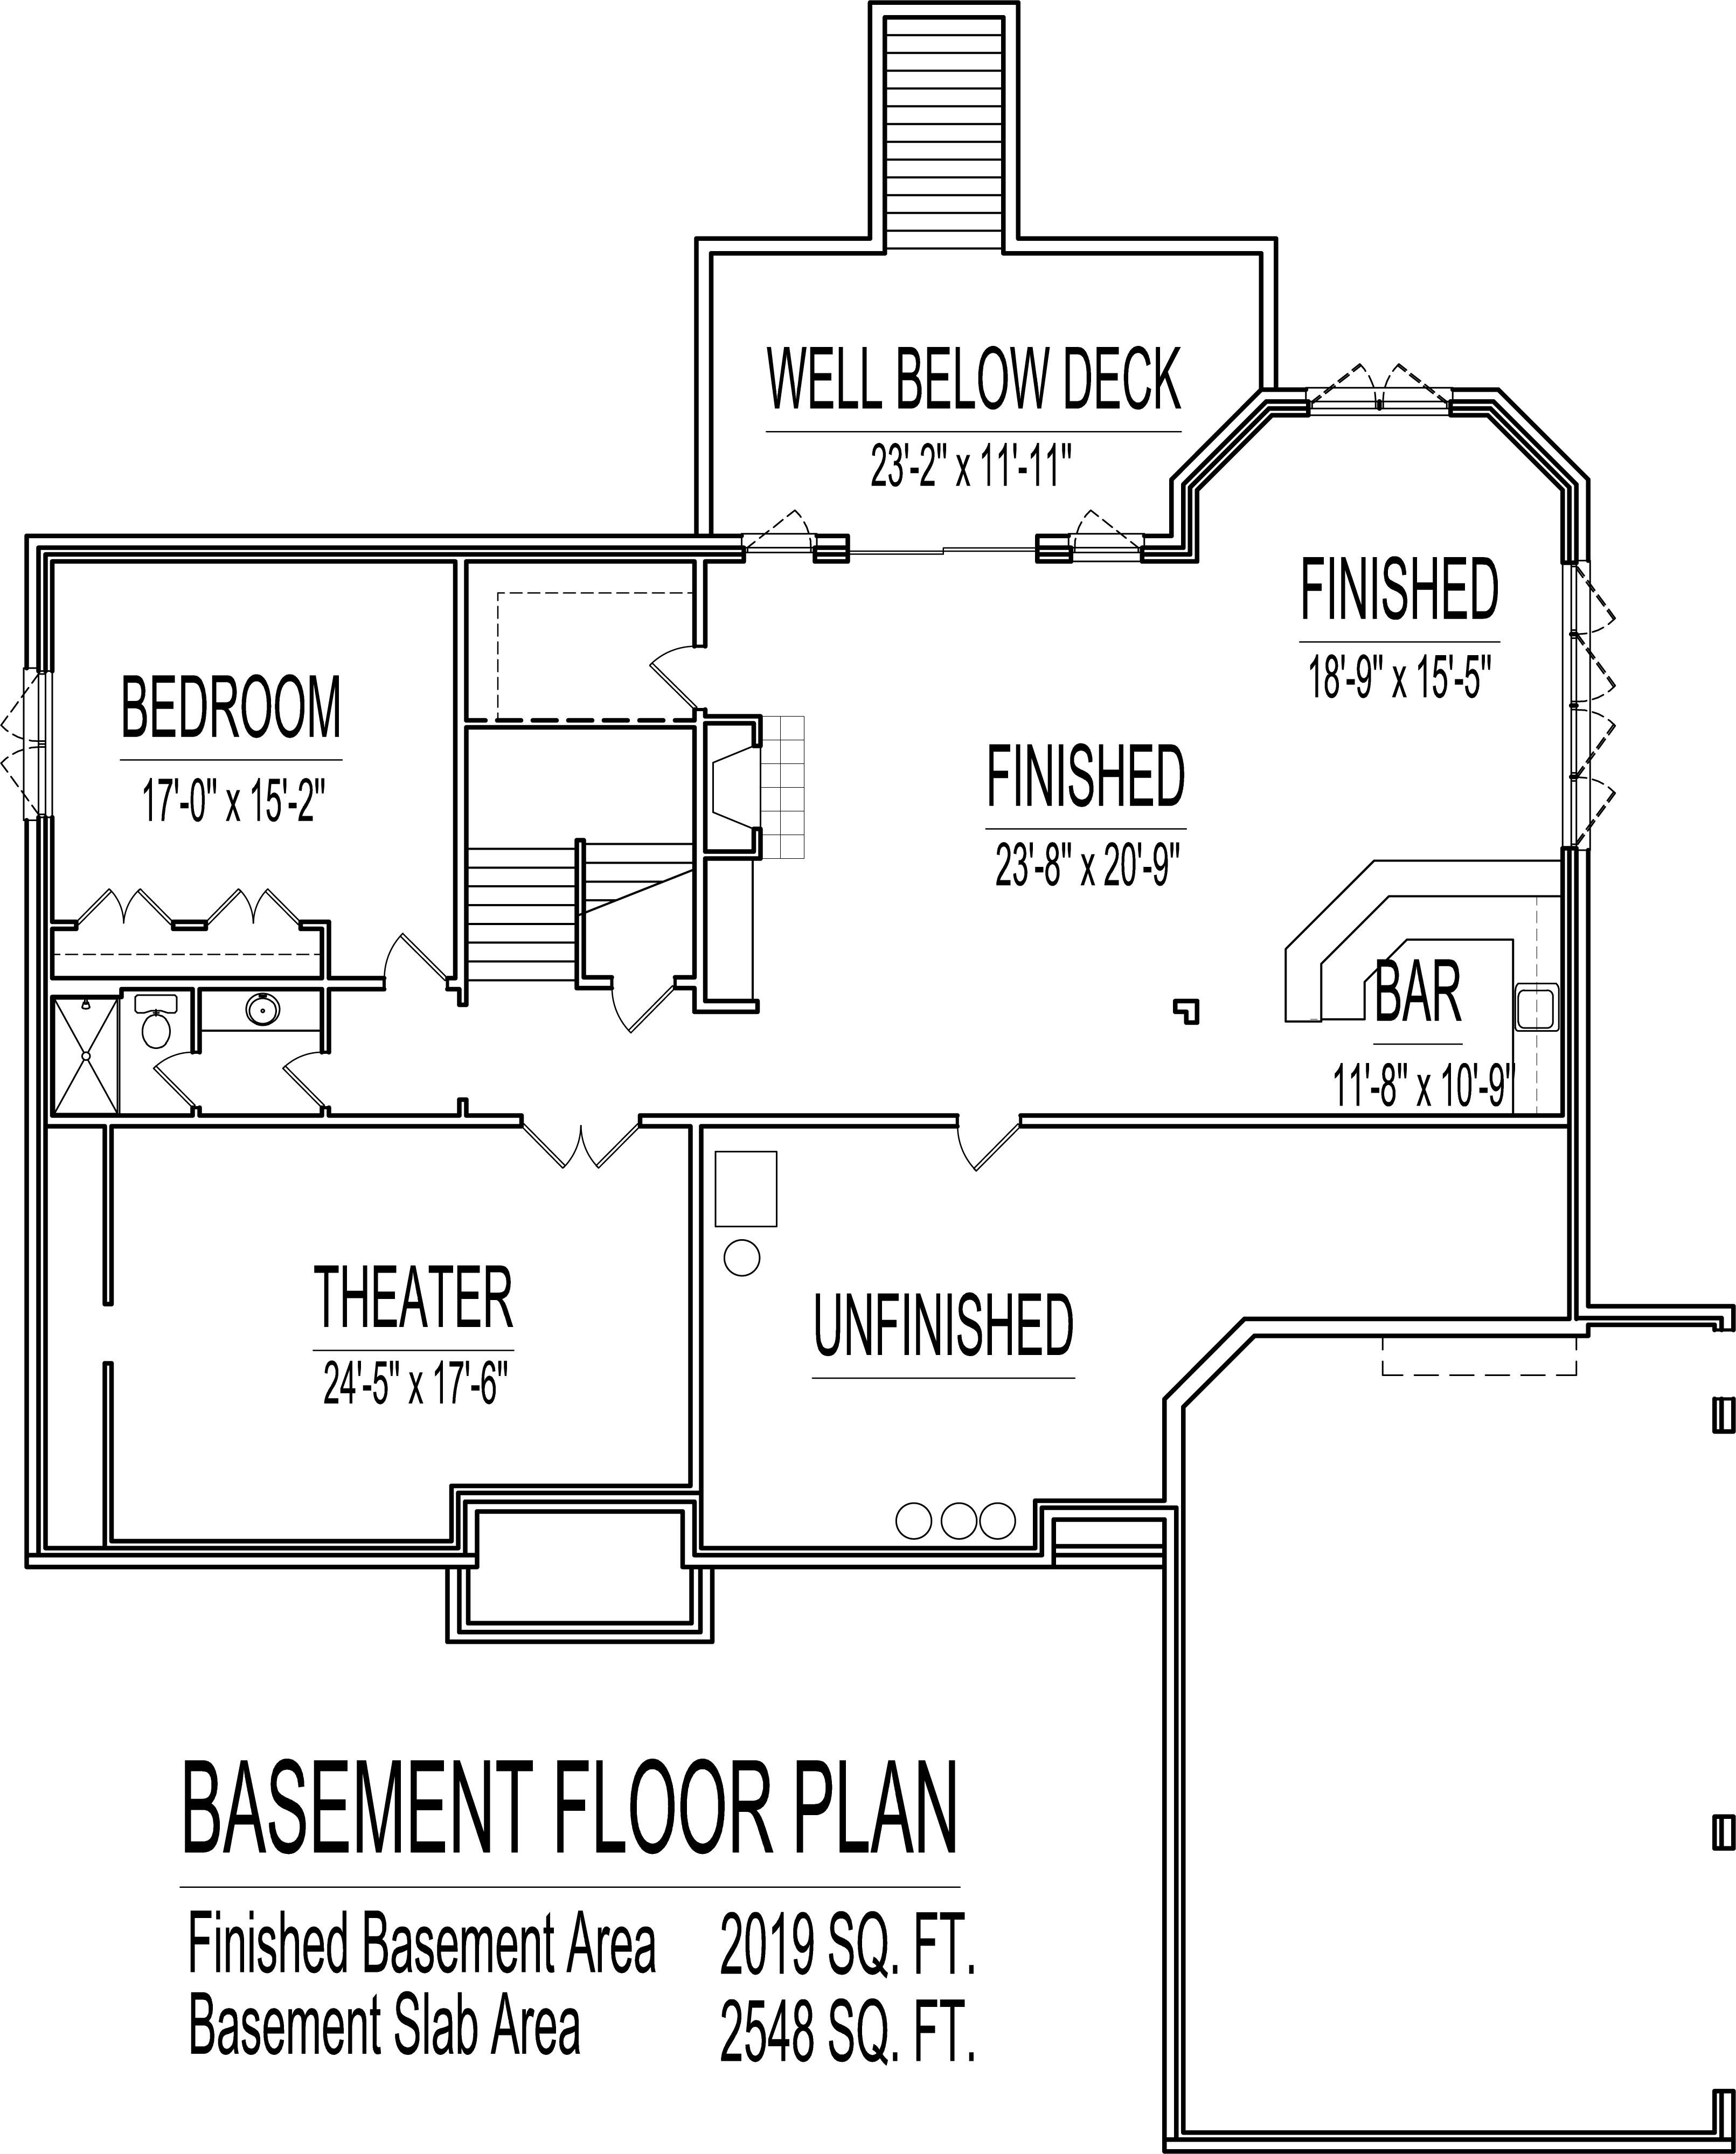 House Plans San Antonio Inspirational 2 Sets Of Stairs 4 Bedroom 2 Story House Plans 5100 Sq Ft